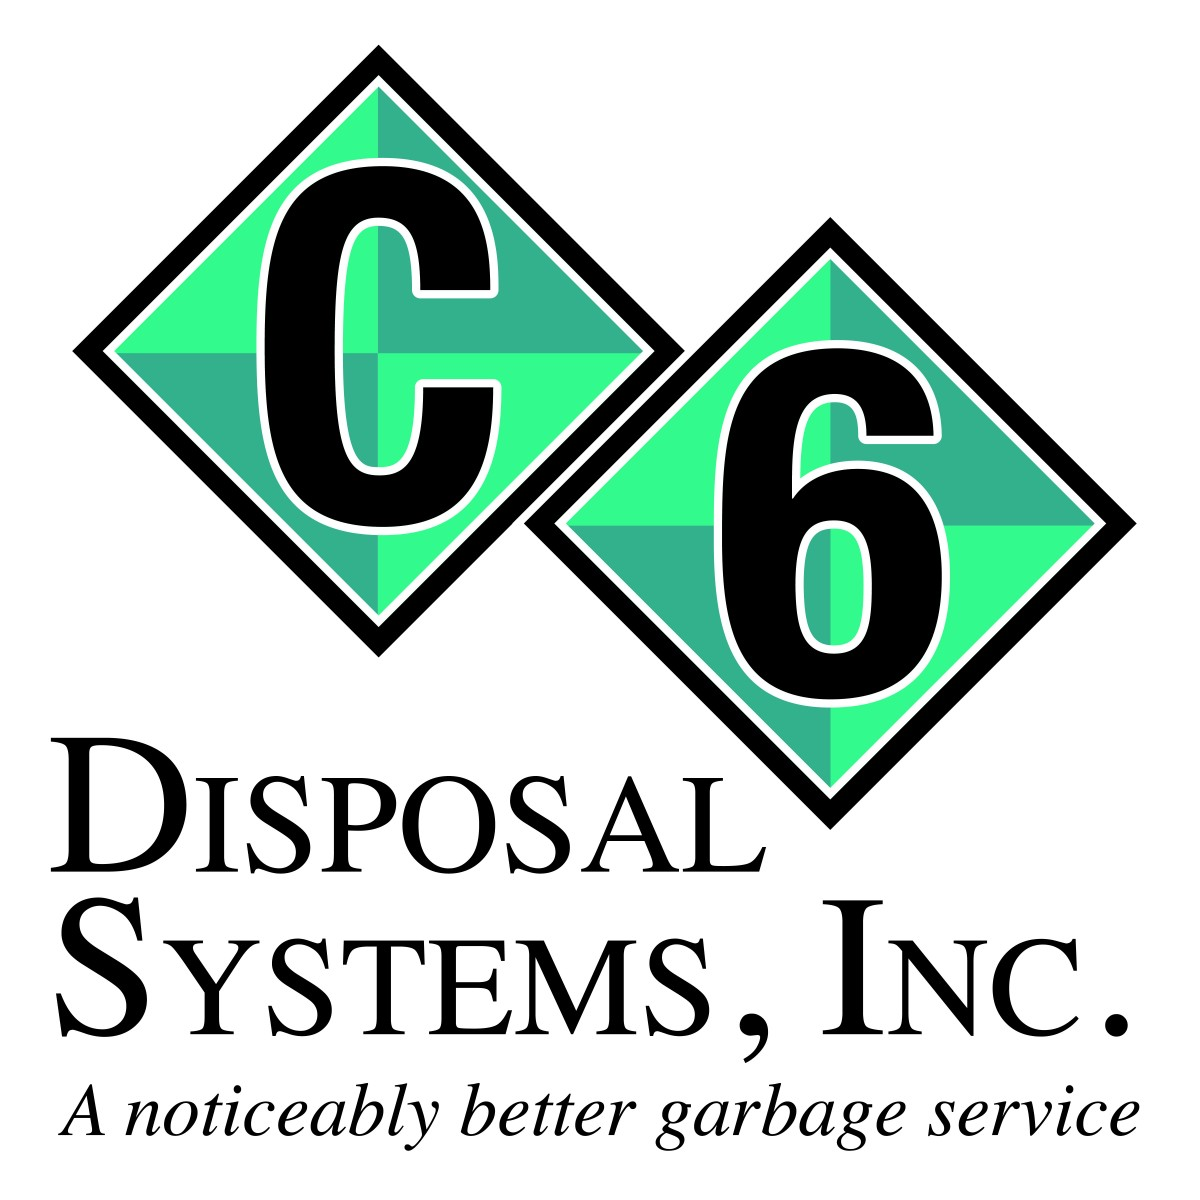 C 6 Disposal Systems Inc